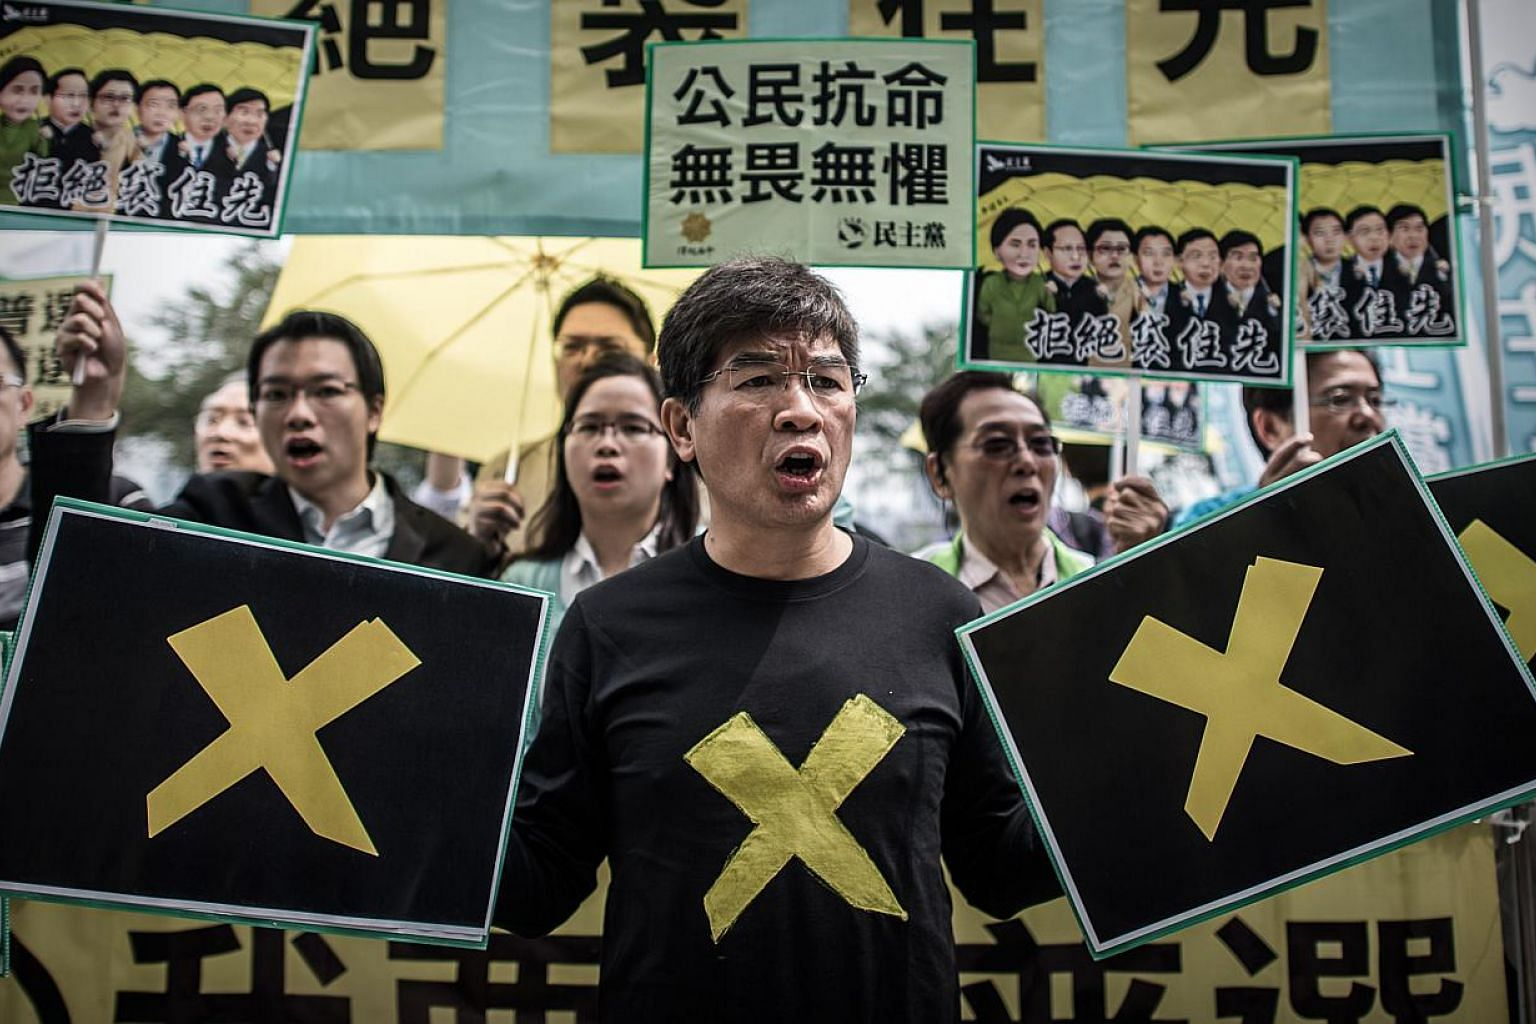 Pro-democracy demonstrators stage a protest outside the government building in Hong Kong on April 22, 2015. -- PHOTO: AFP